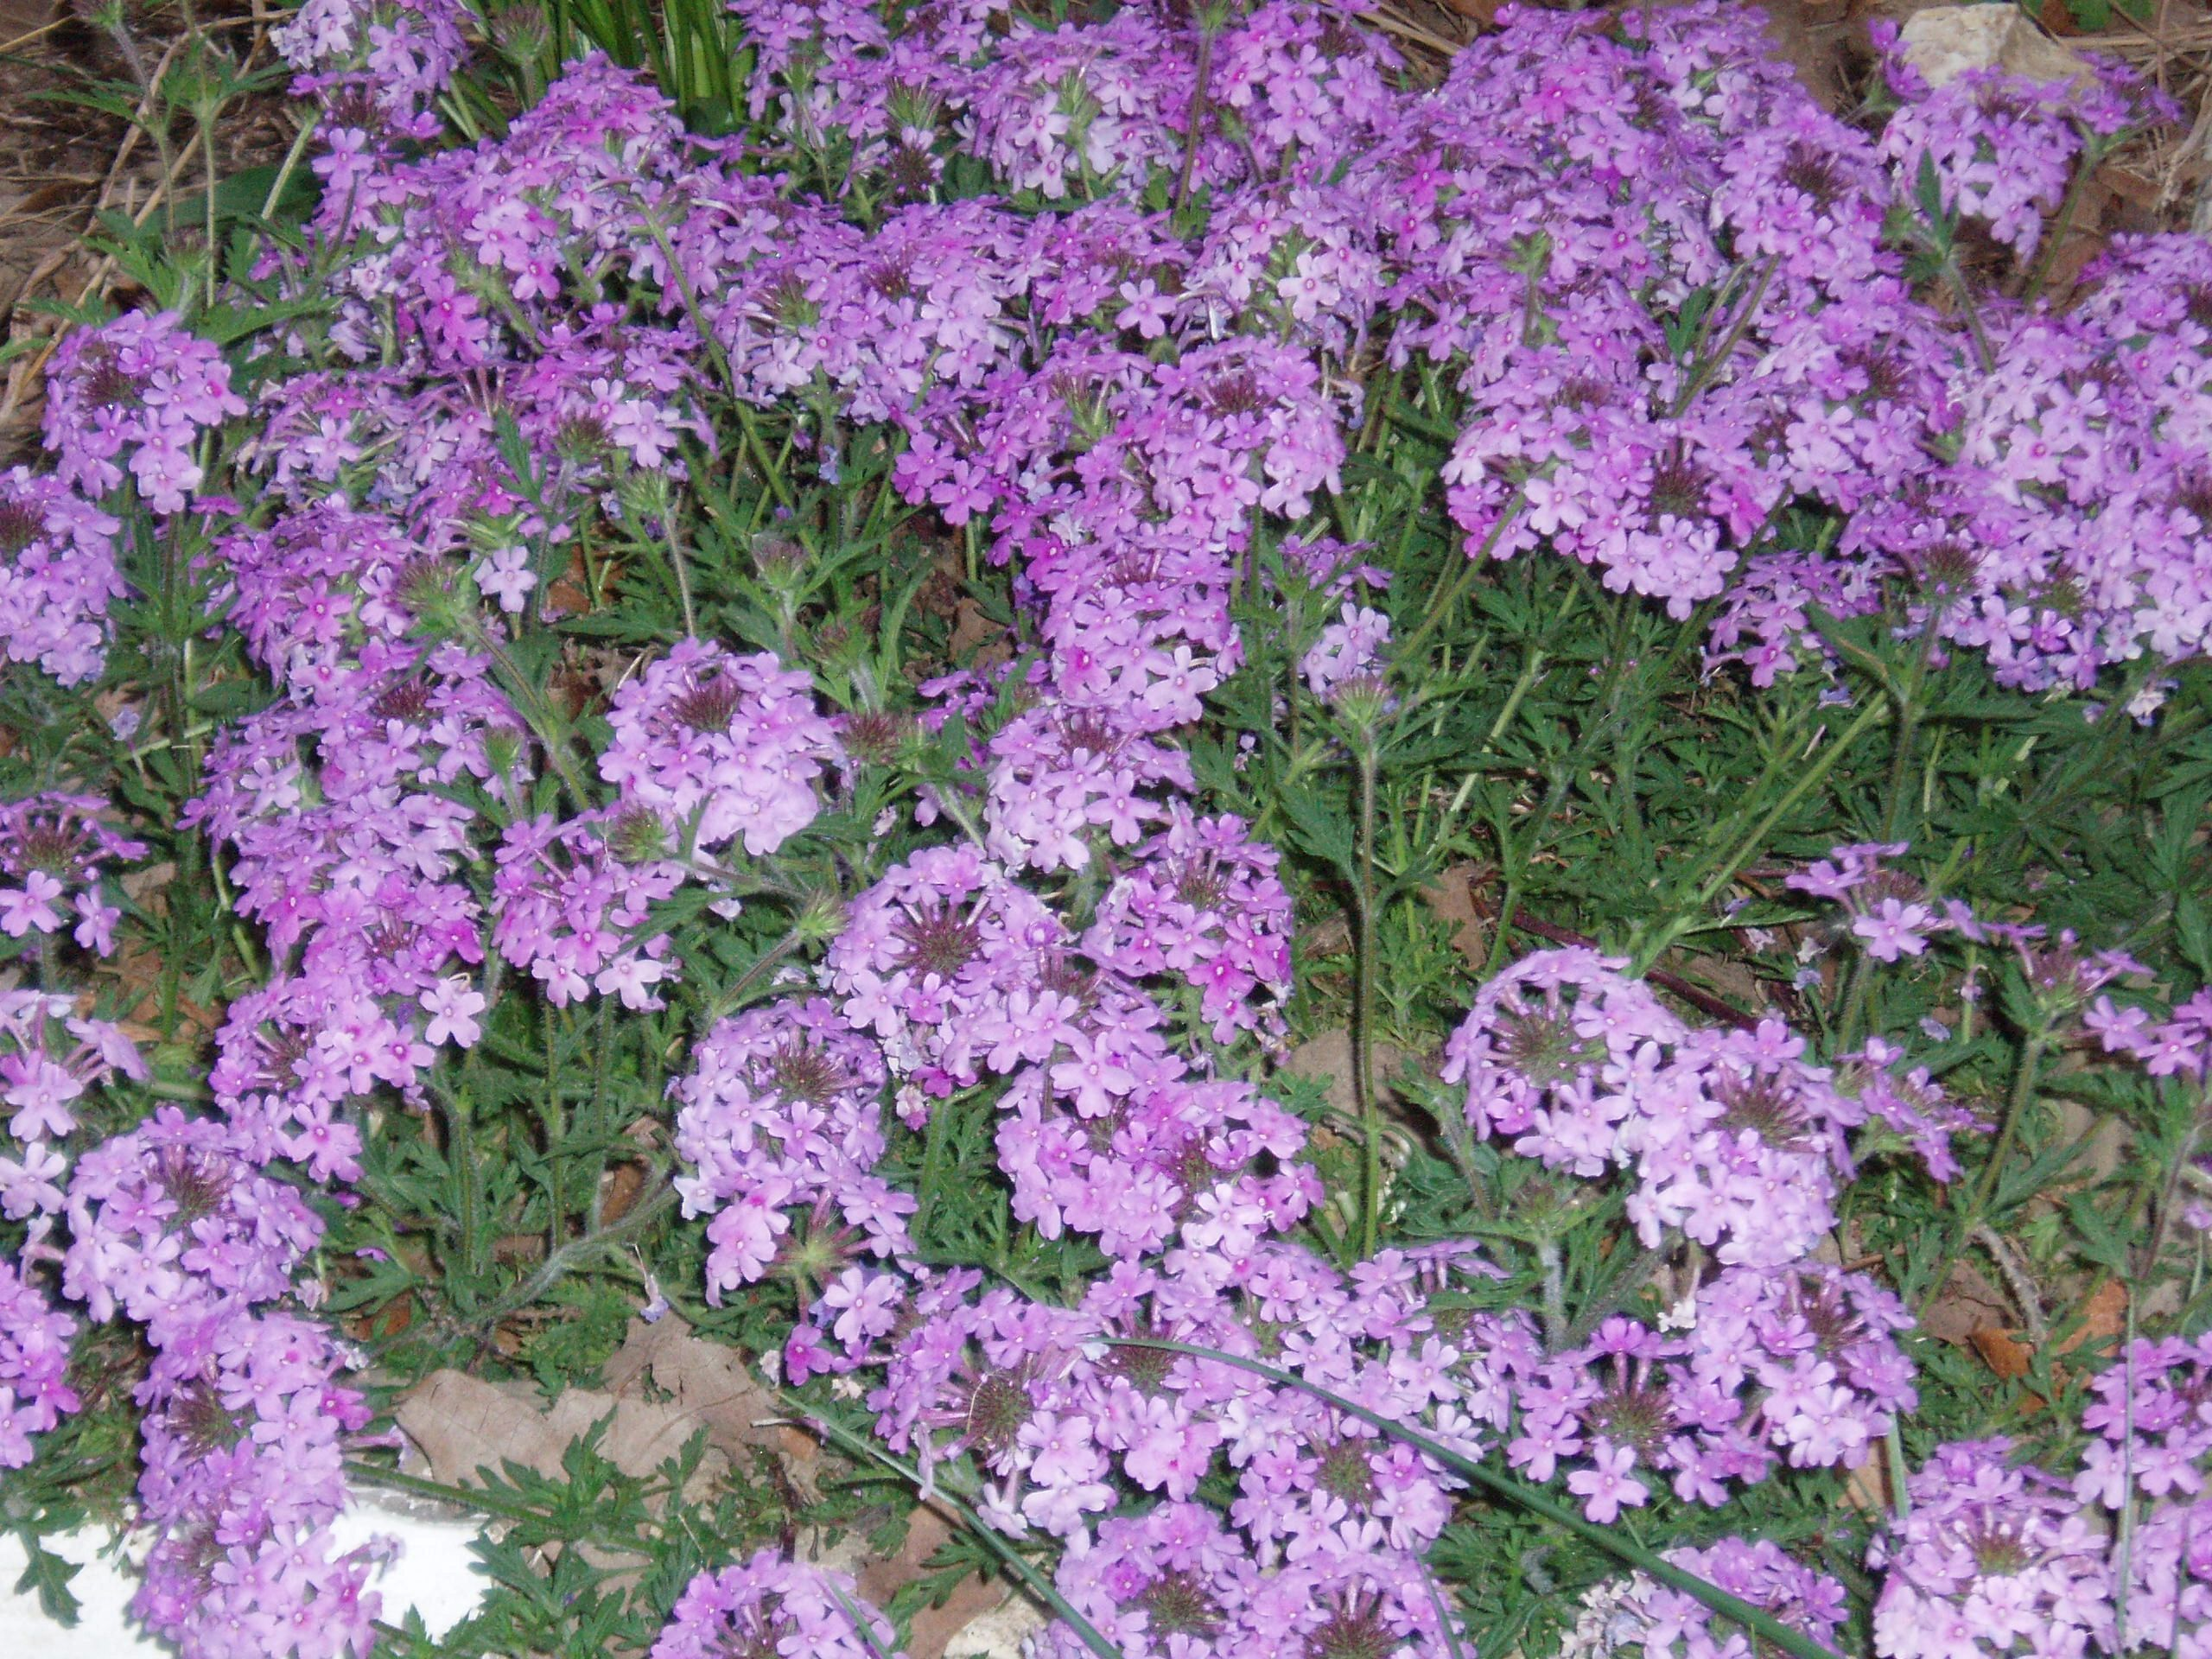 "{""blocks"":[{""key"":""9h8cm"",""text"":"" Glandularia canaden (Verbena canadensis) Rose Vervain - potted plants  john@easywildflowers.com "",""type"":""unstyled"",""depth"":0,""inlineStyleRanges"":[],""entityRanges"":[],""data"":{}}],""entityMap"":{}}"